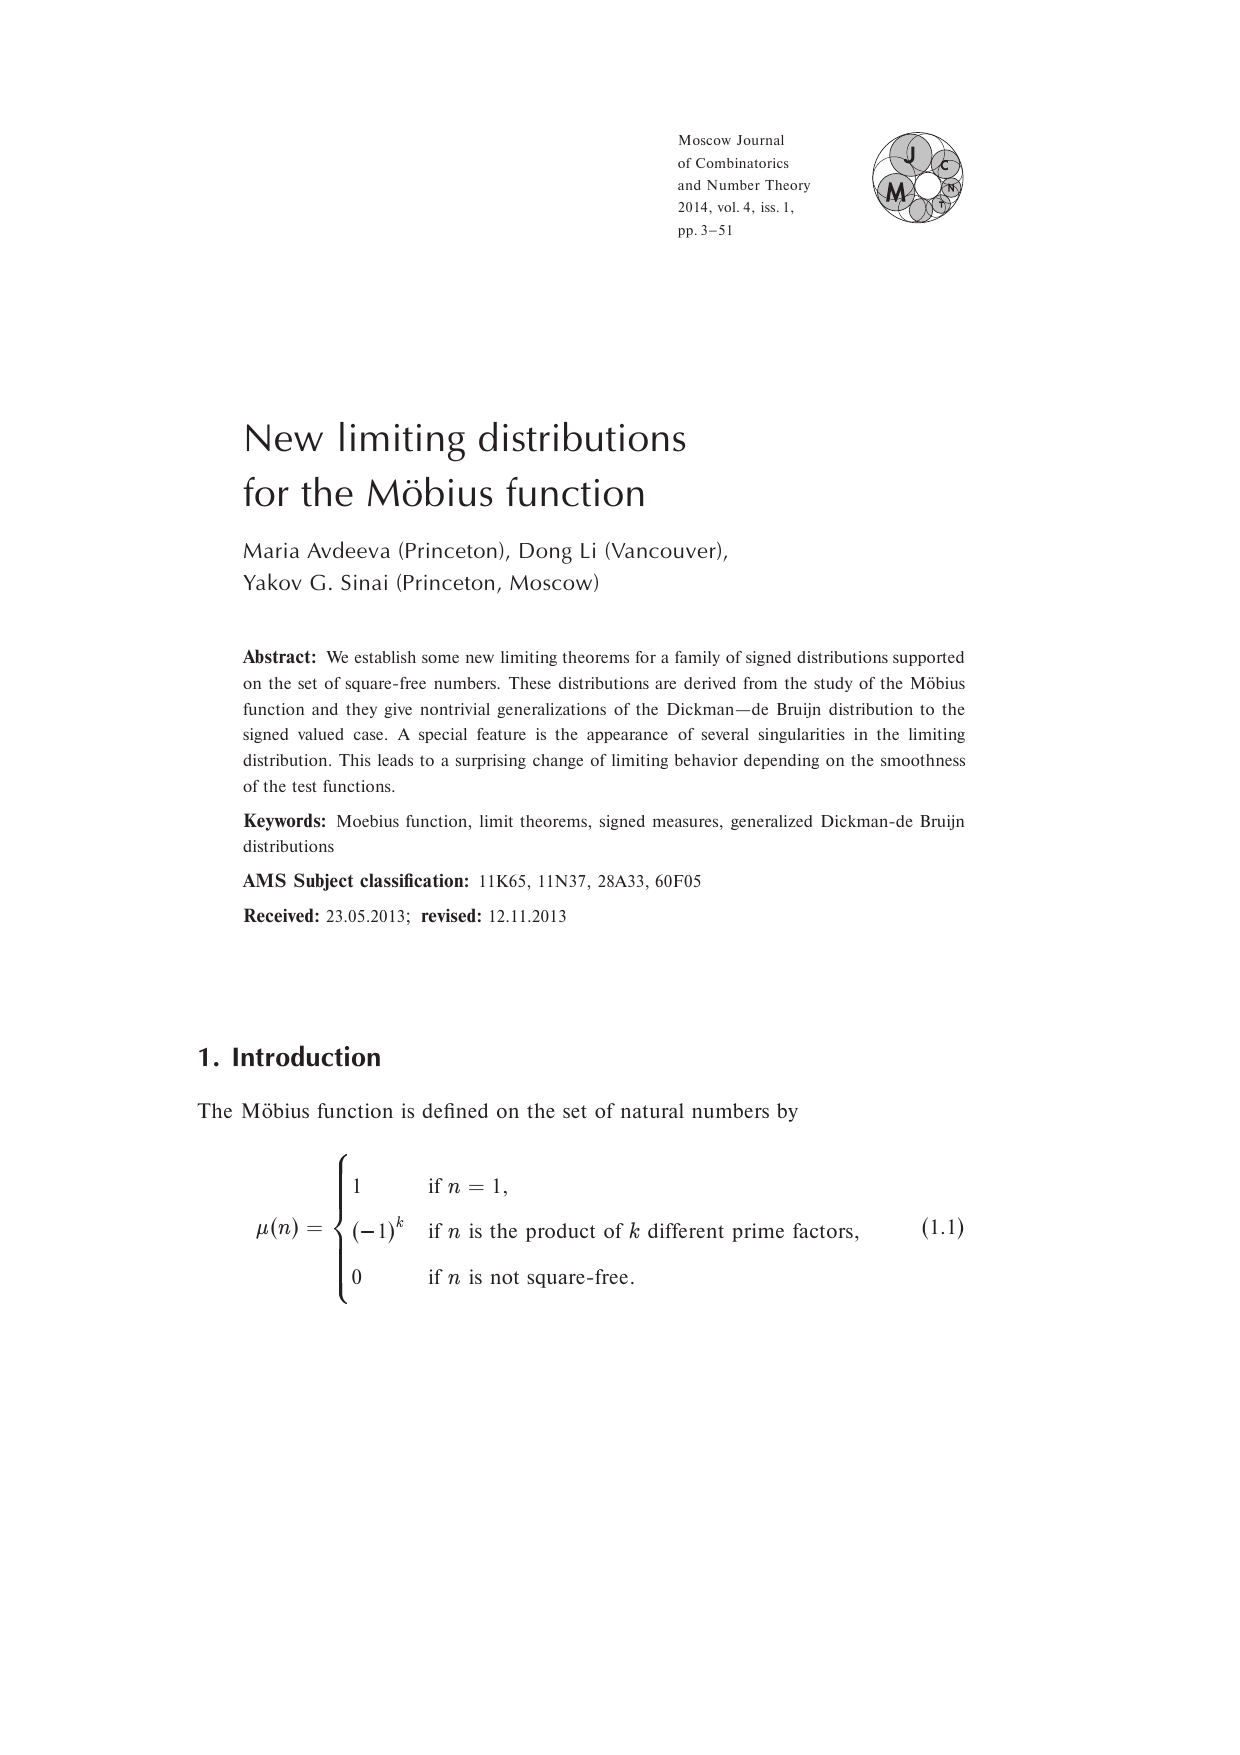 Moscow journal of combinatorics and number theory free access publicscrutiny Image collections